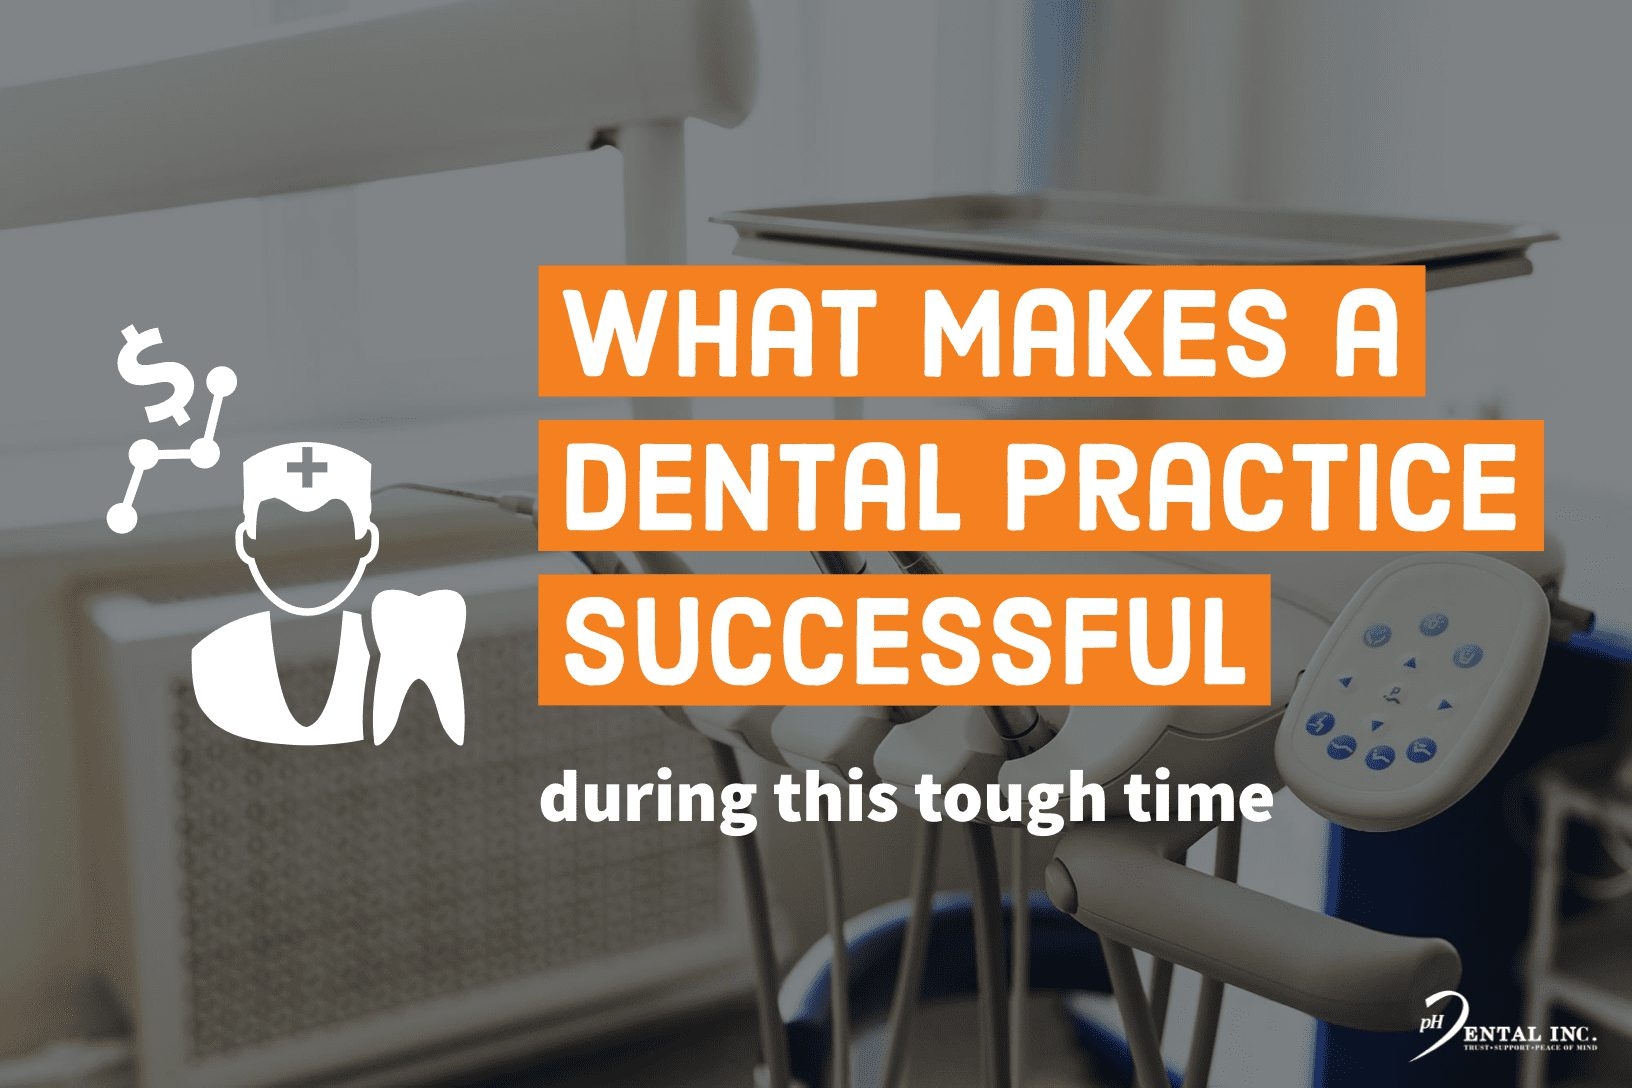 what makes a dental practice successful during this tough time of COVID-19